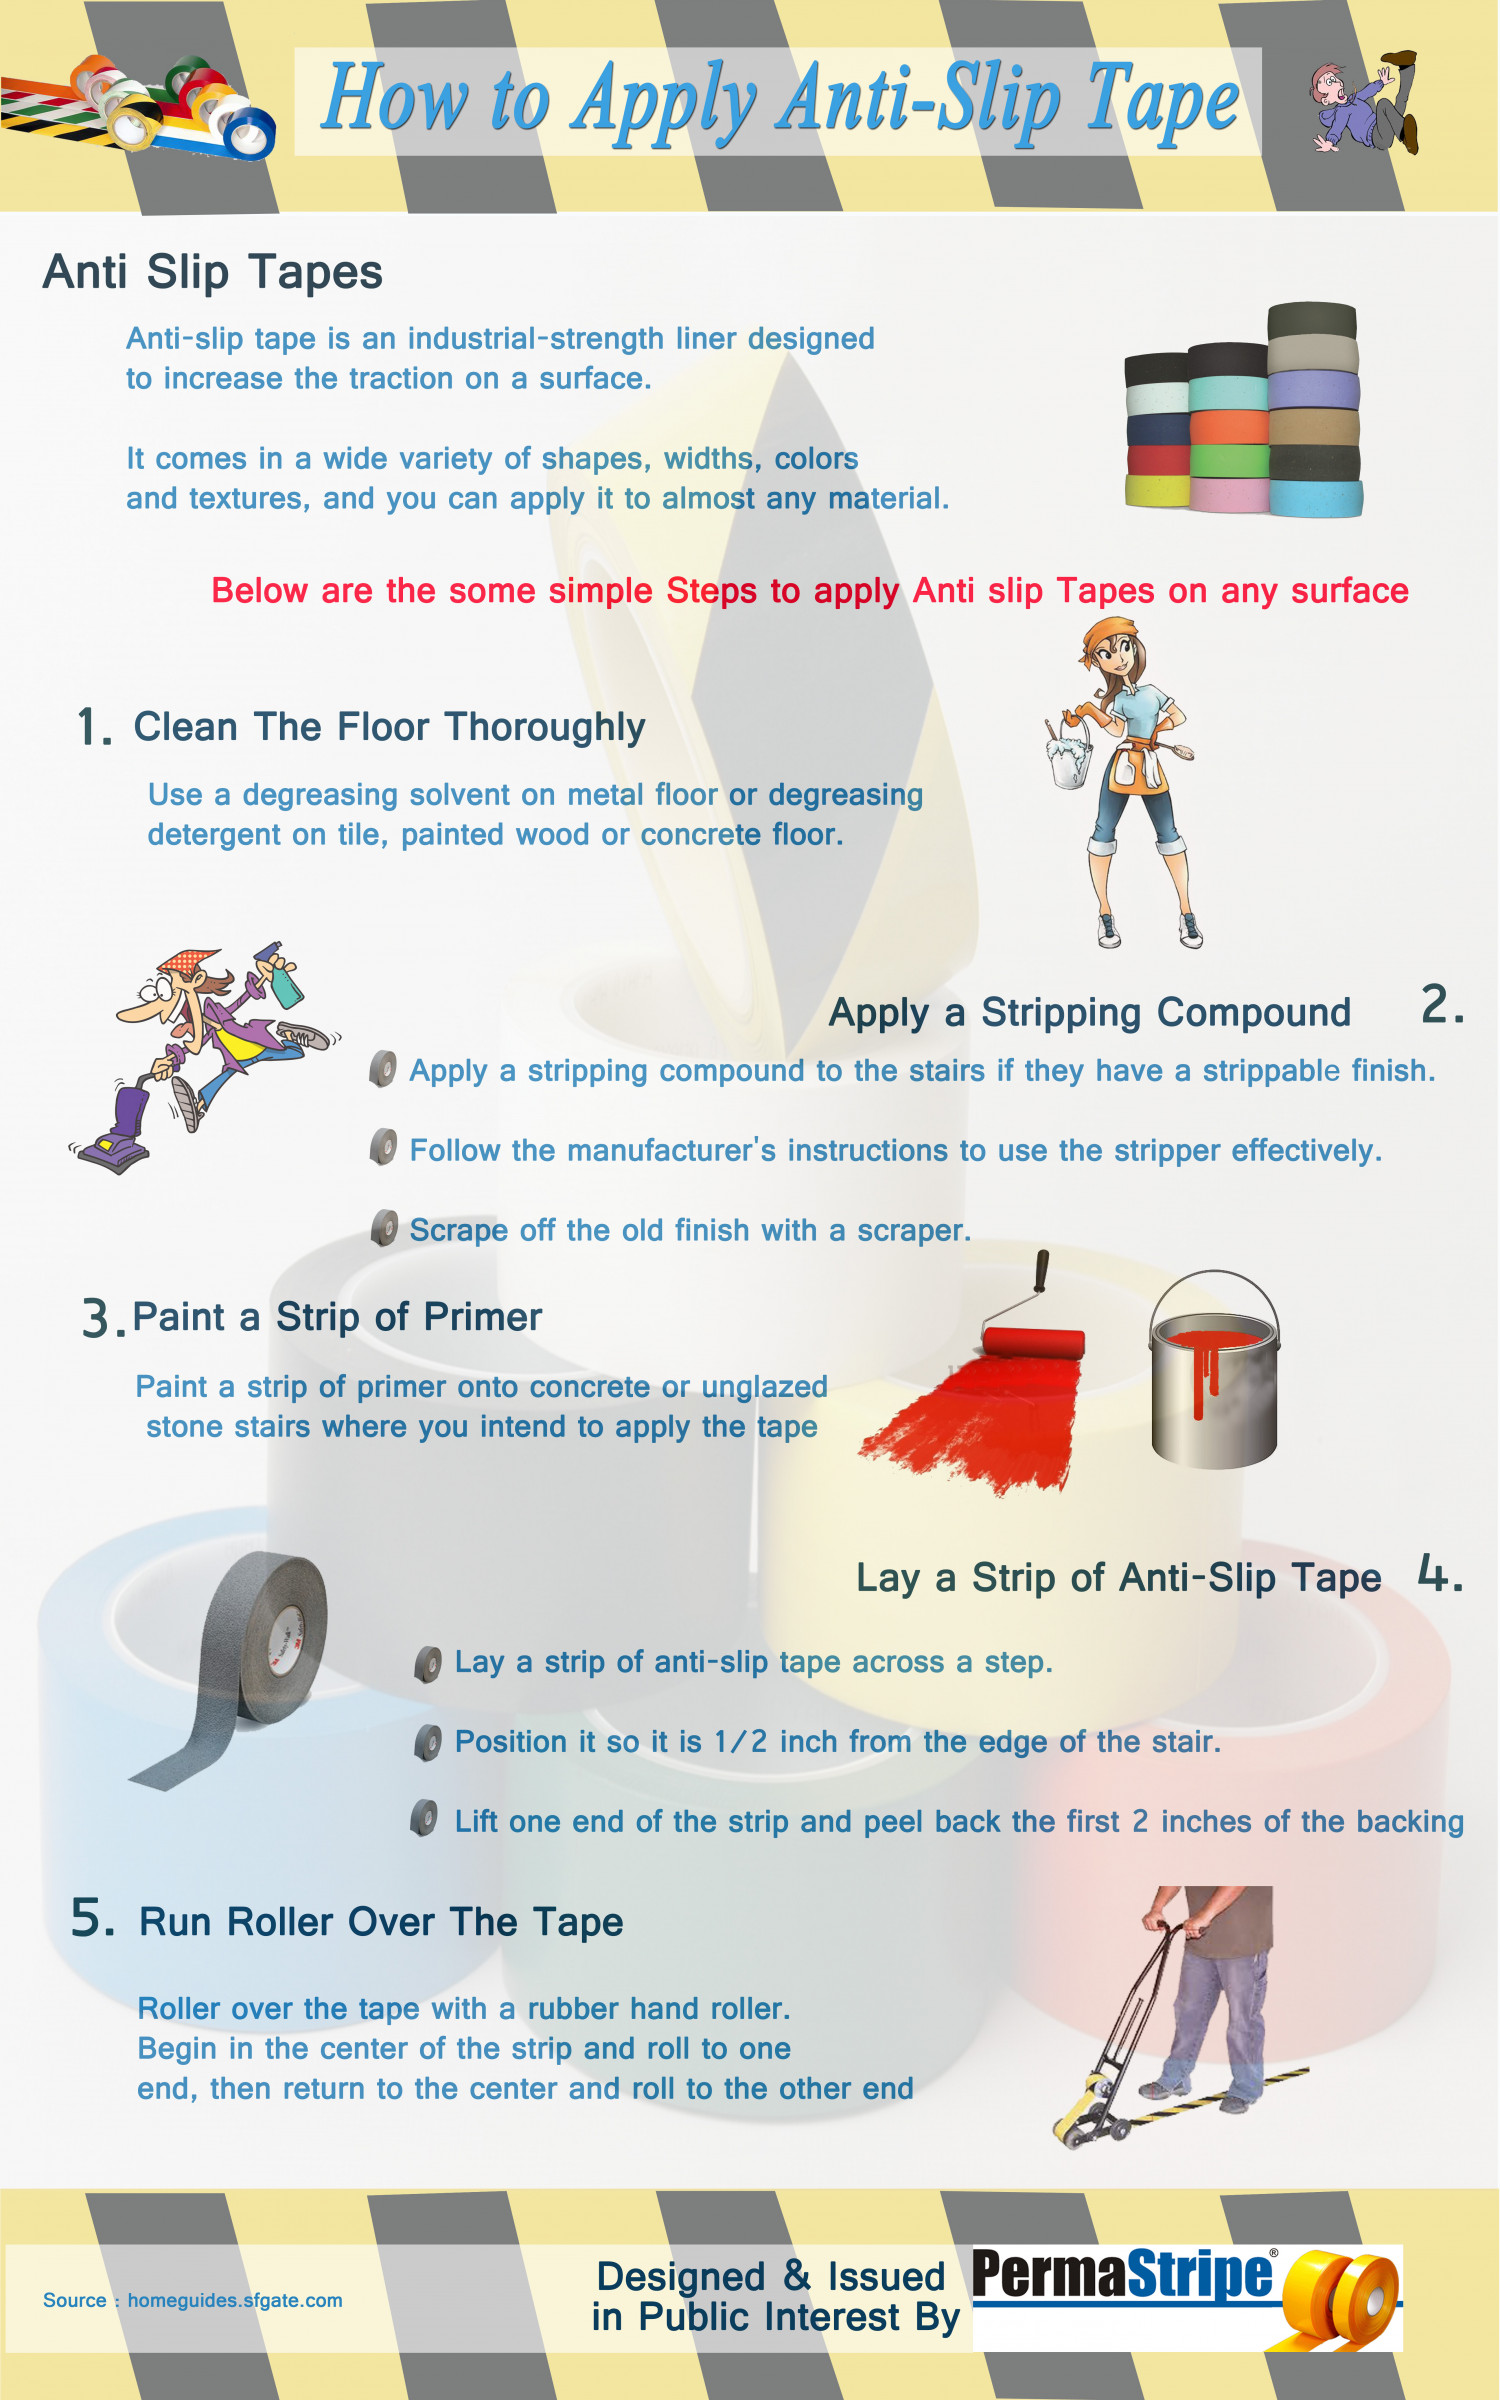 How to Apply Anti-Slip Tape Infographic